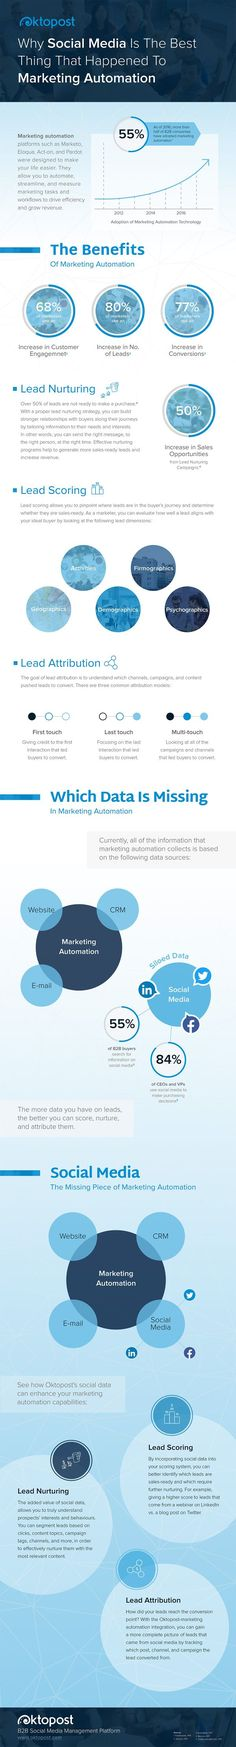 Social Media's Role in Marketing Automation: Vital Data | Infographic